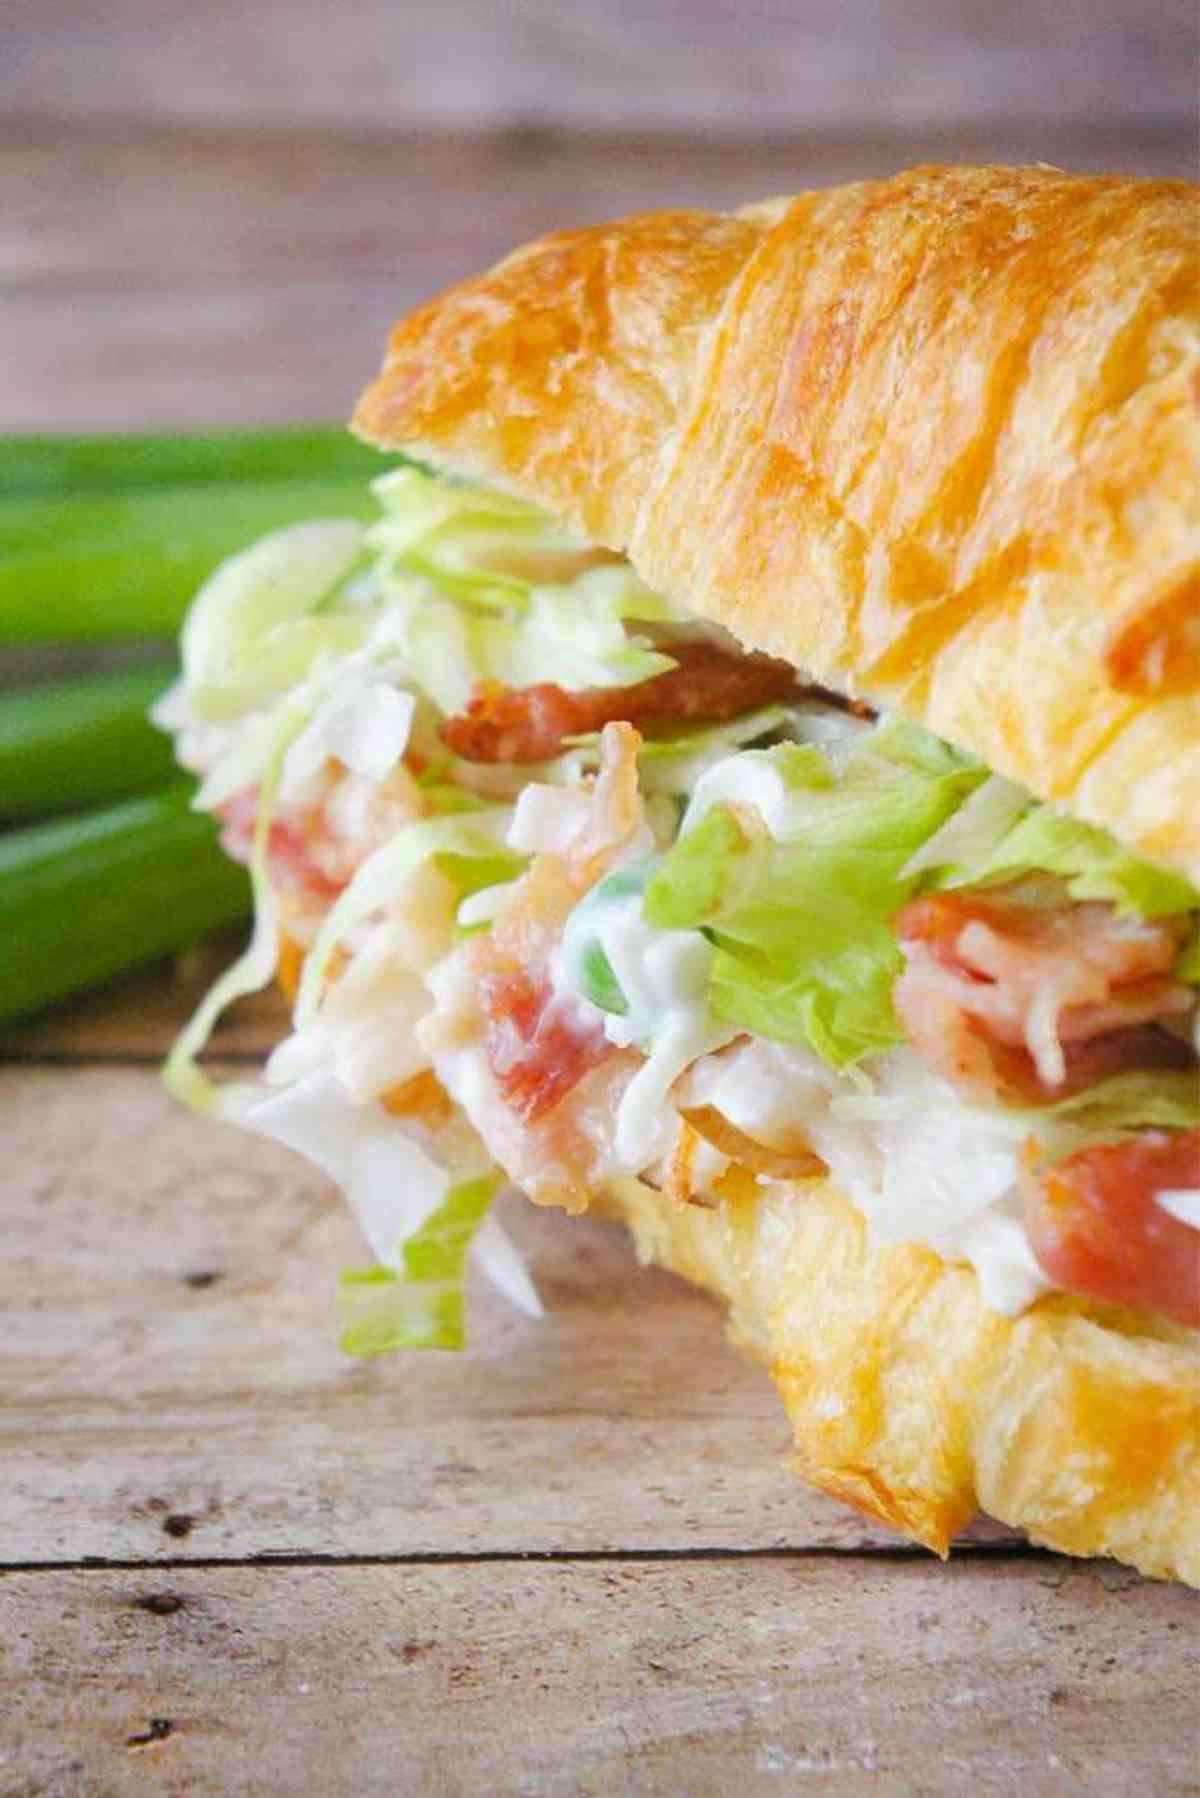 Turkey Salad Croissant next to some green onions.